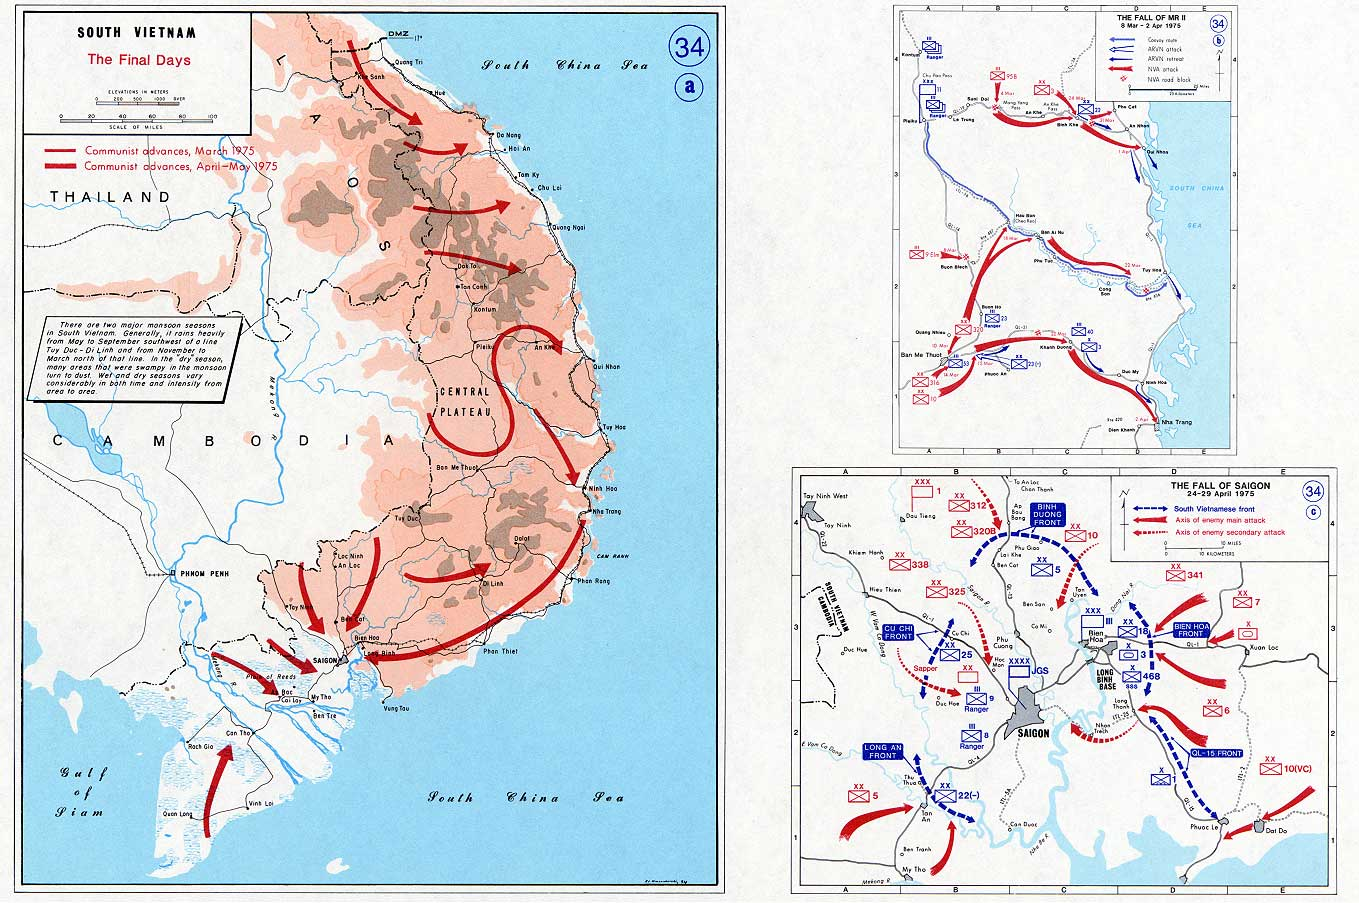 South Vietnam - The final days 1975